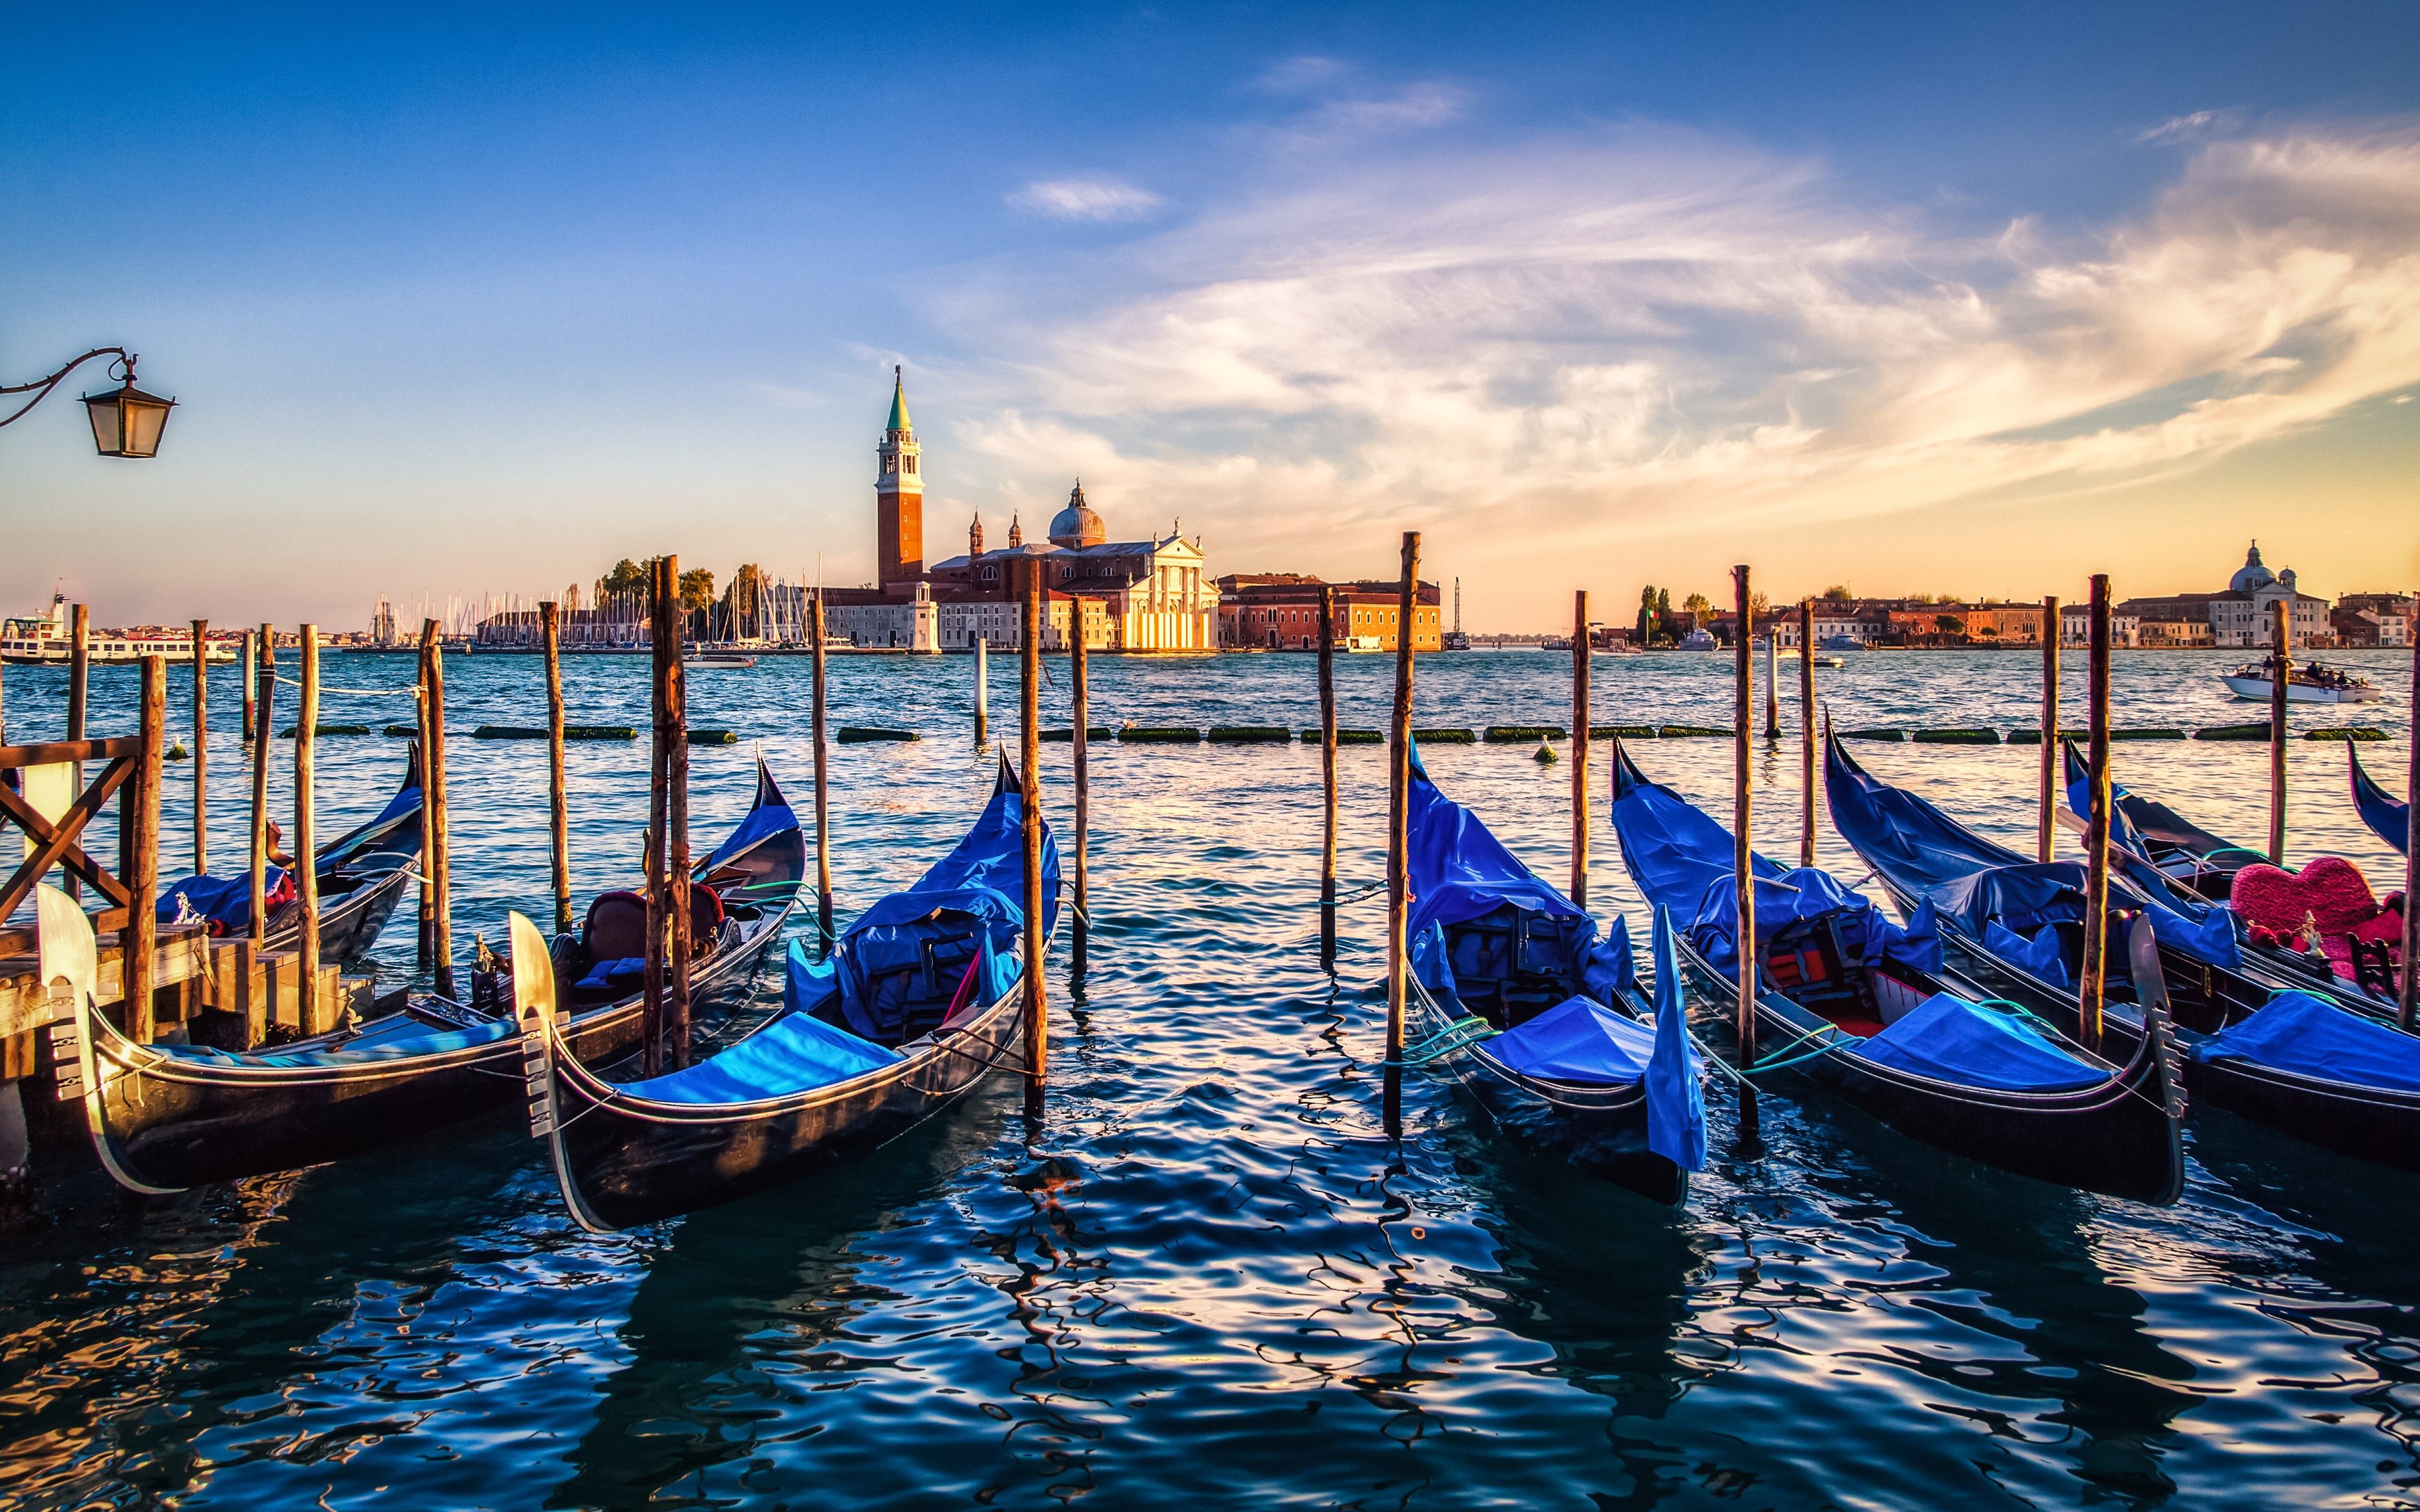 Gondolas from Venice at sunset wallpaper 3840x2400